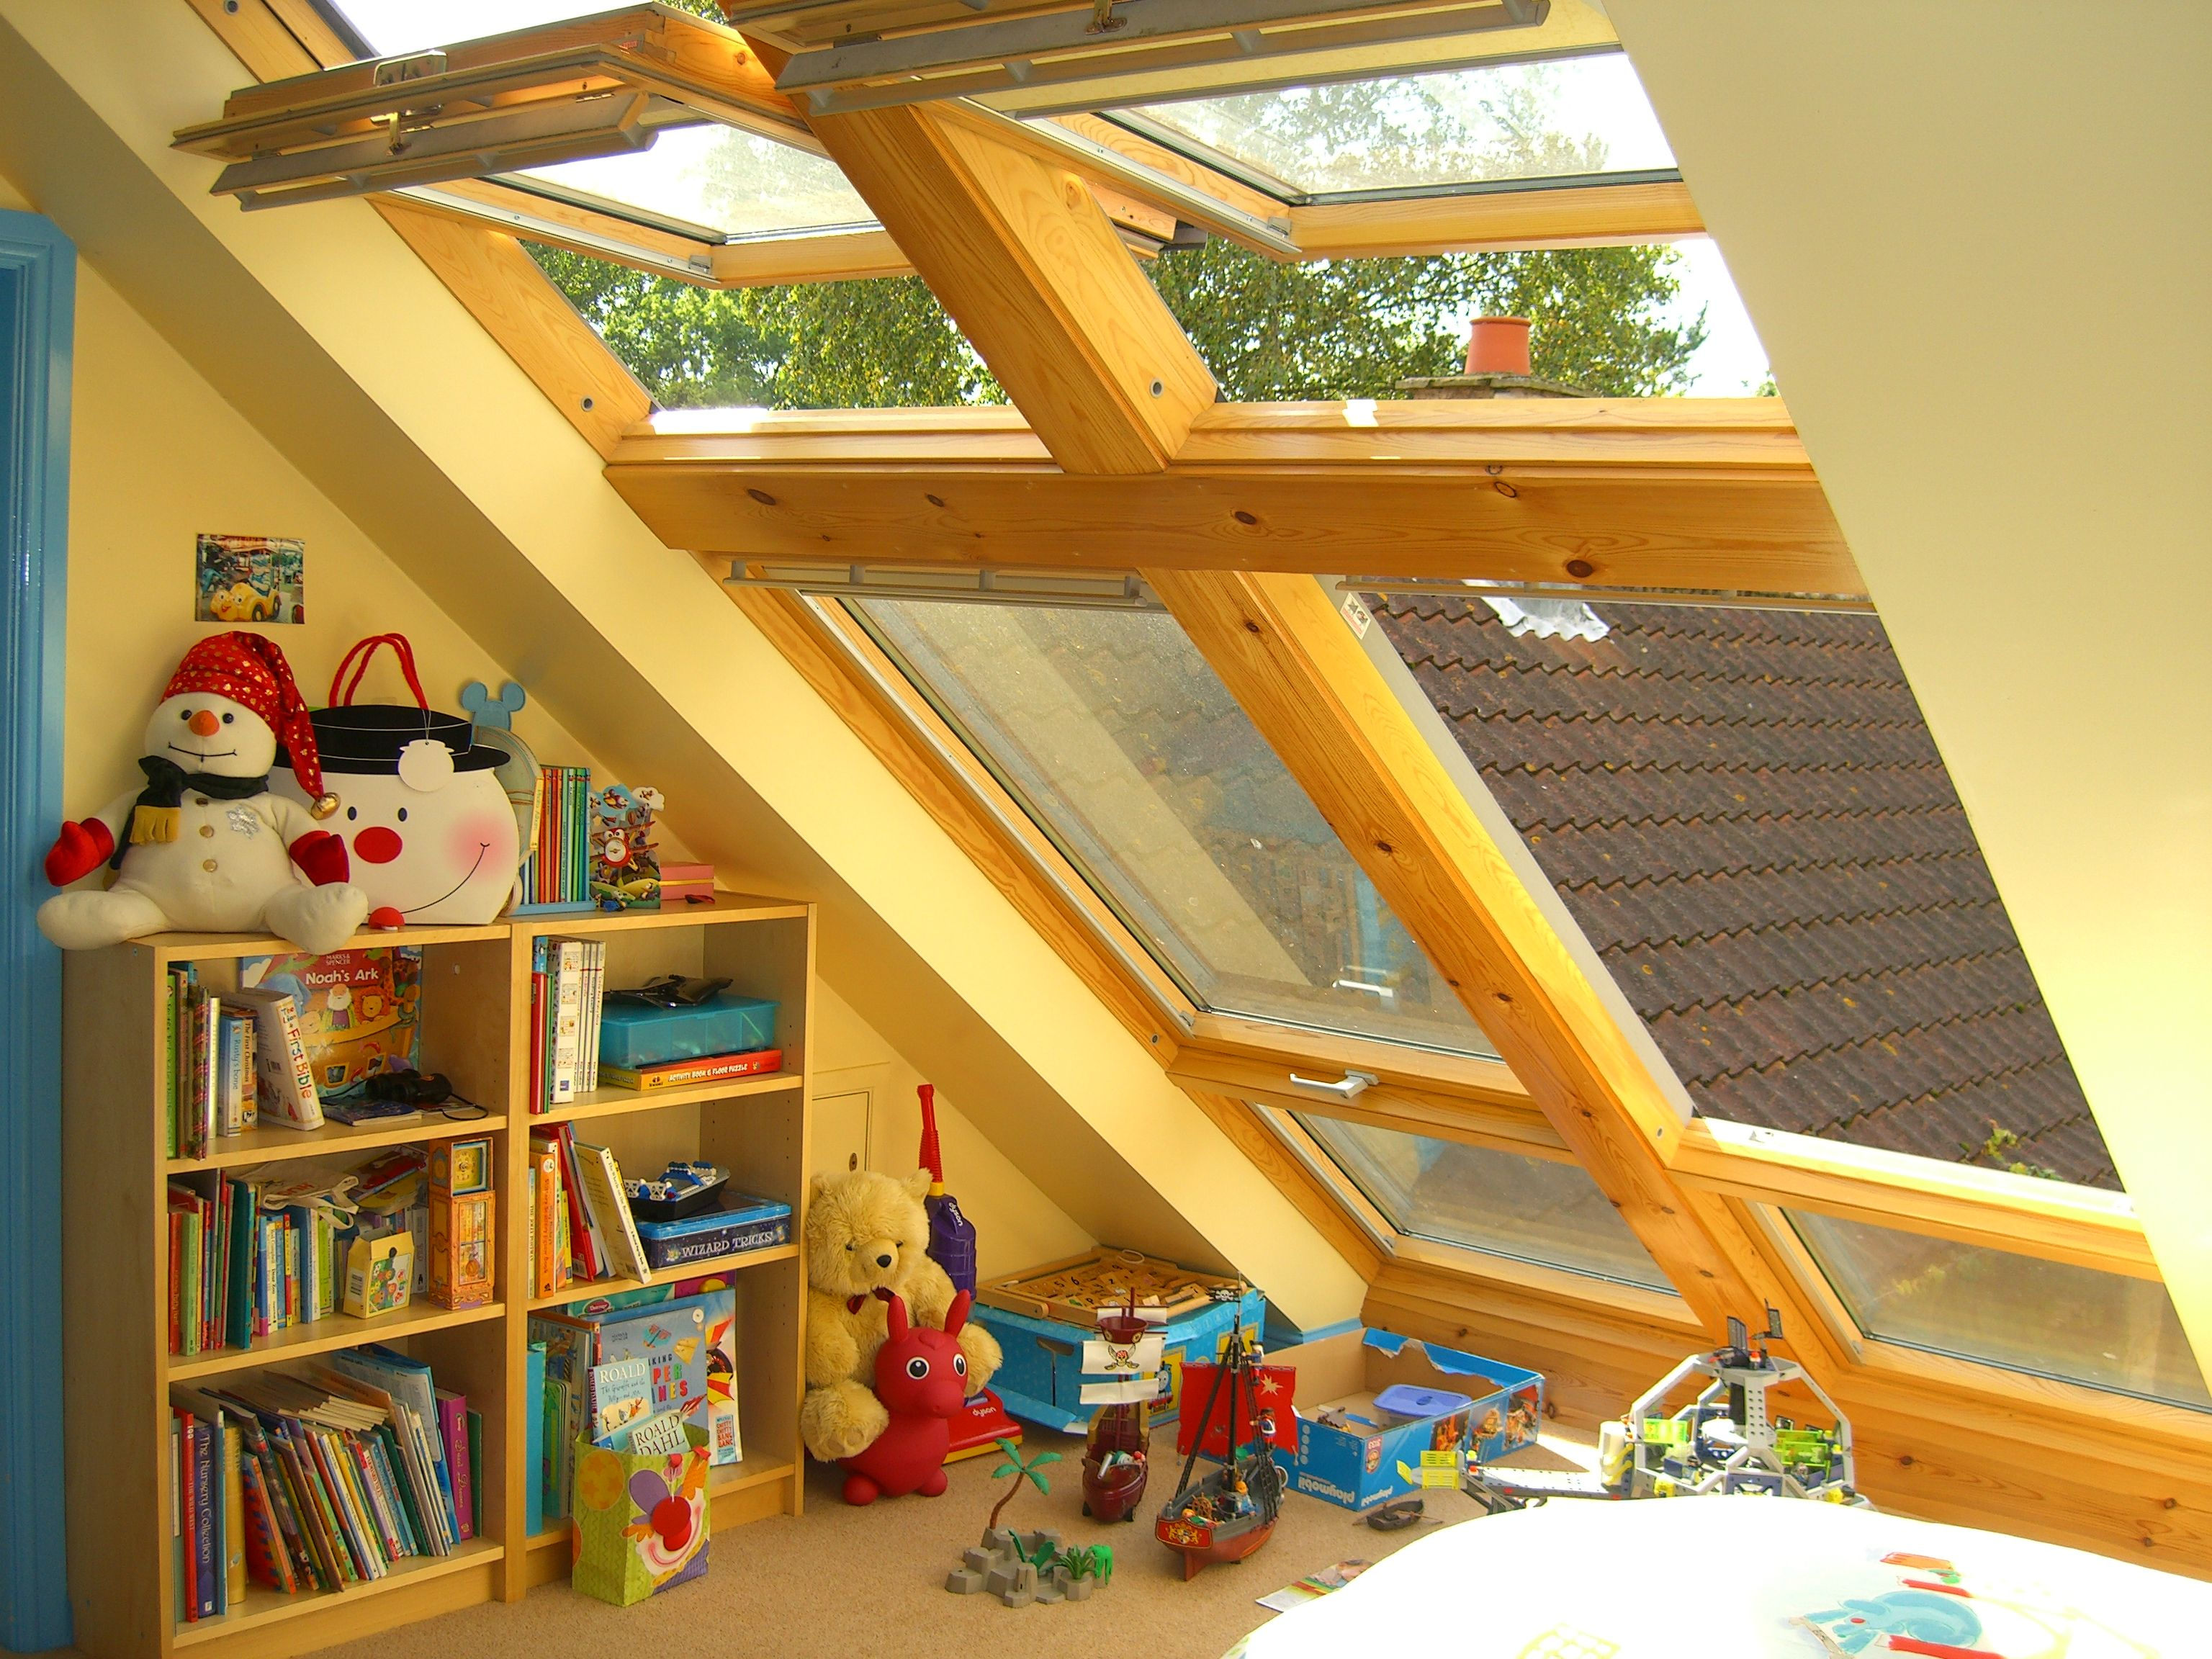 A Cheaper Alternative To Velux Cabrio Balcony The Bottom Does Not Open But You Will Be Over 1000 Pound Better O Loft Room Loft Conversion Loft Conversion Velux